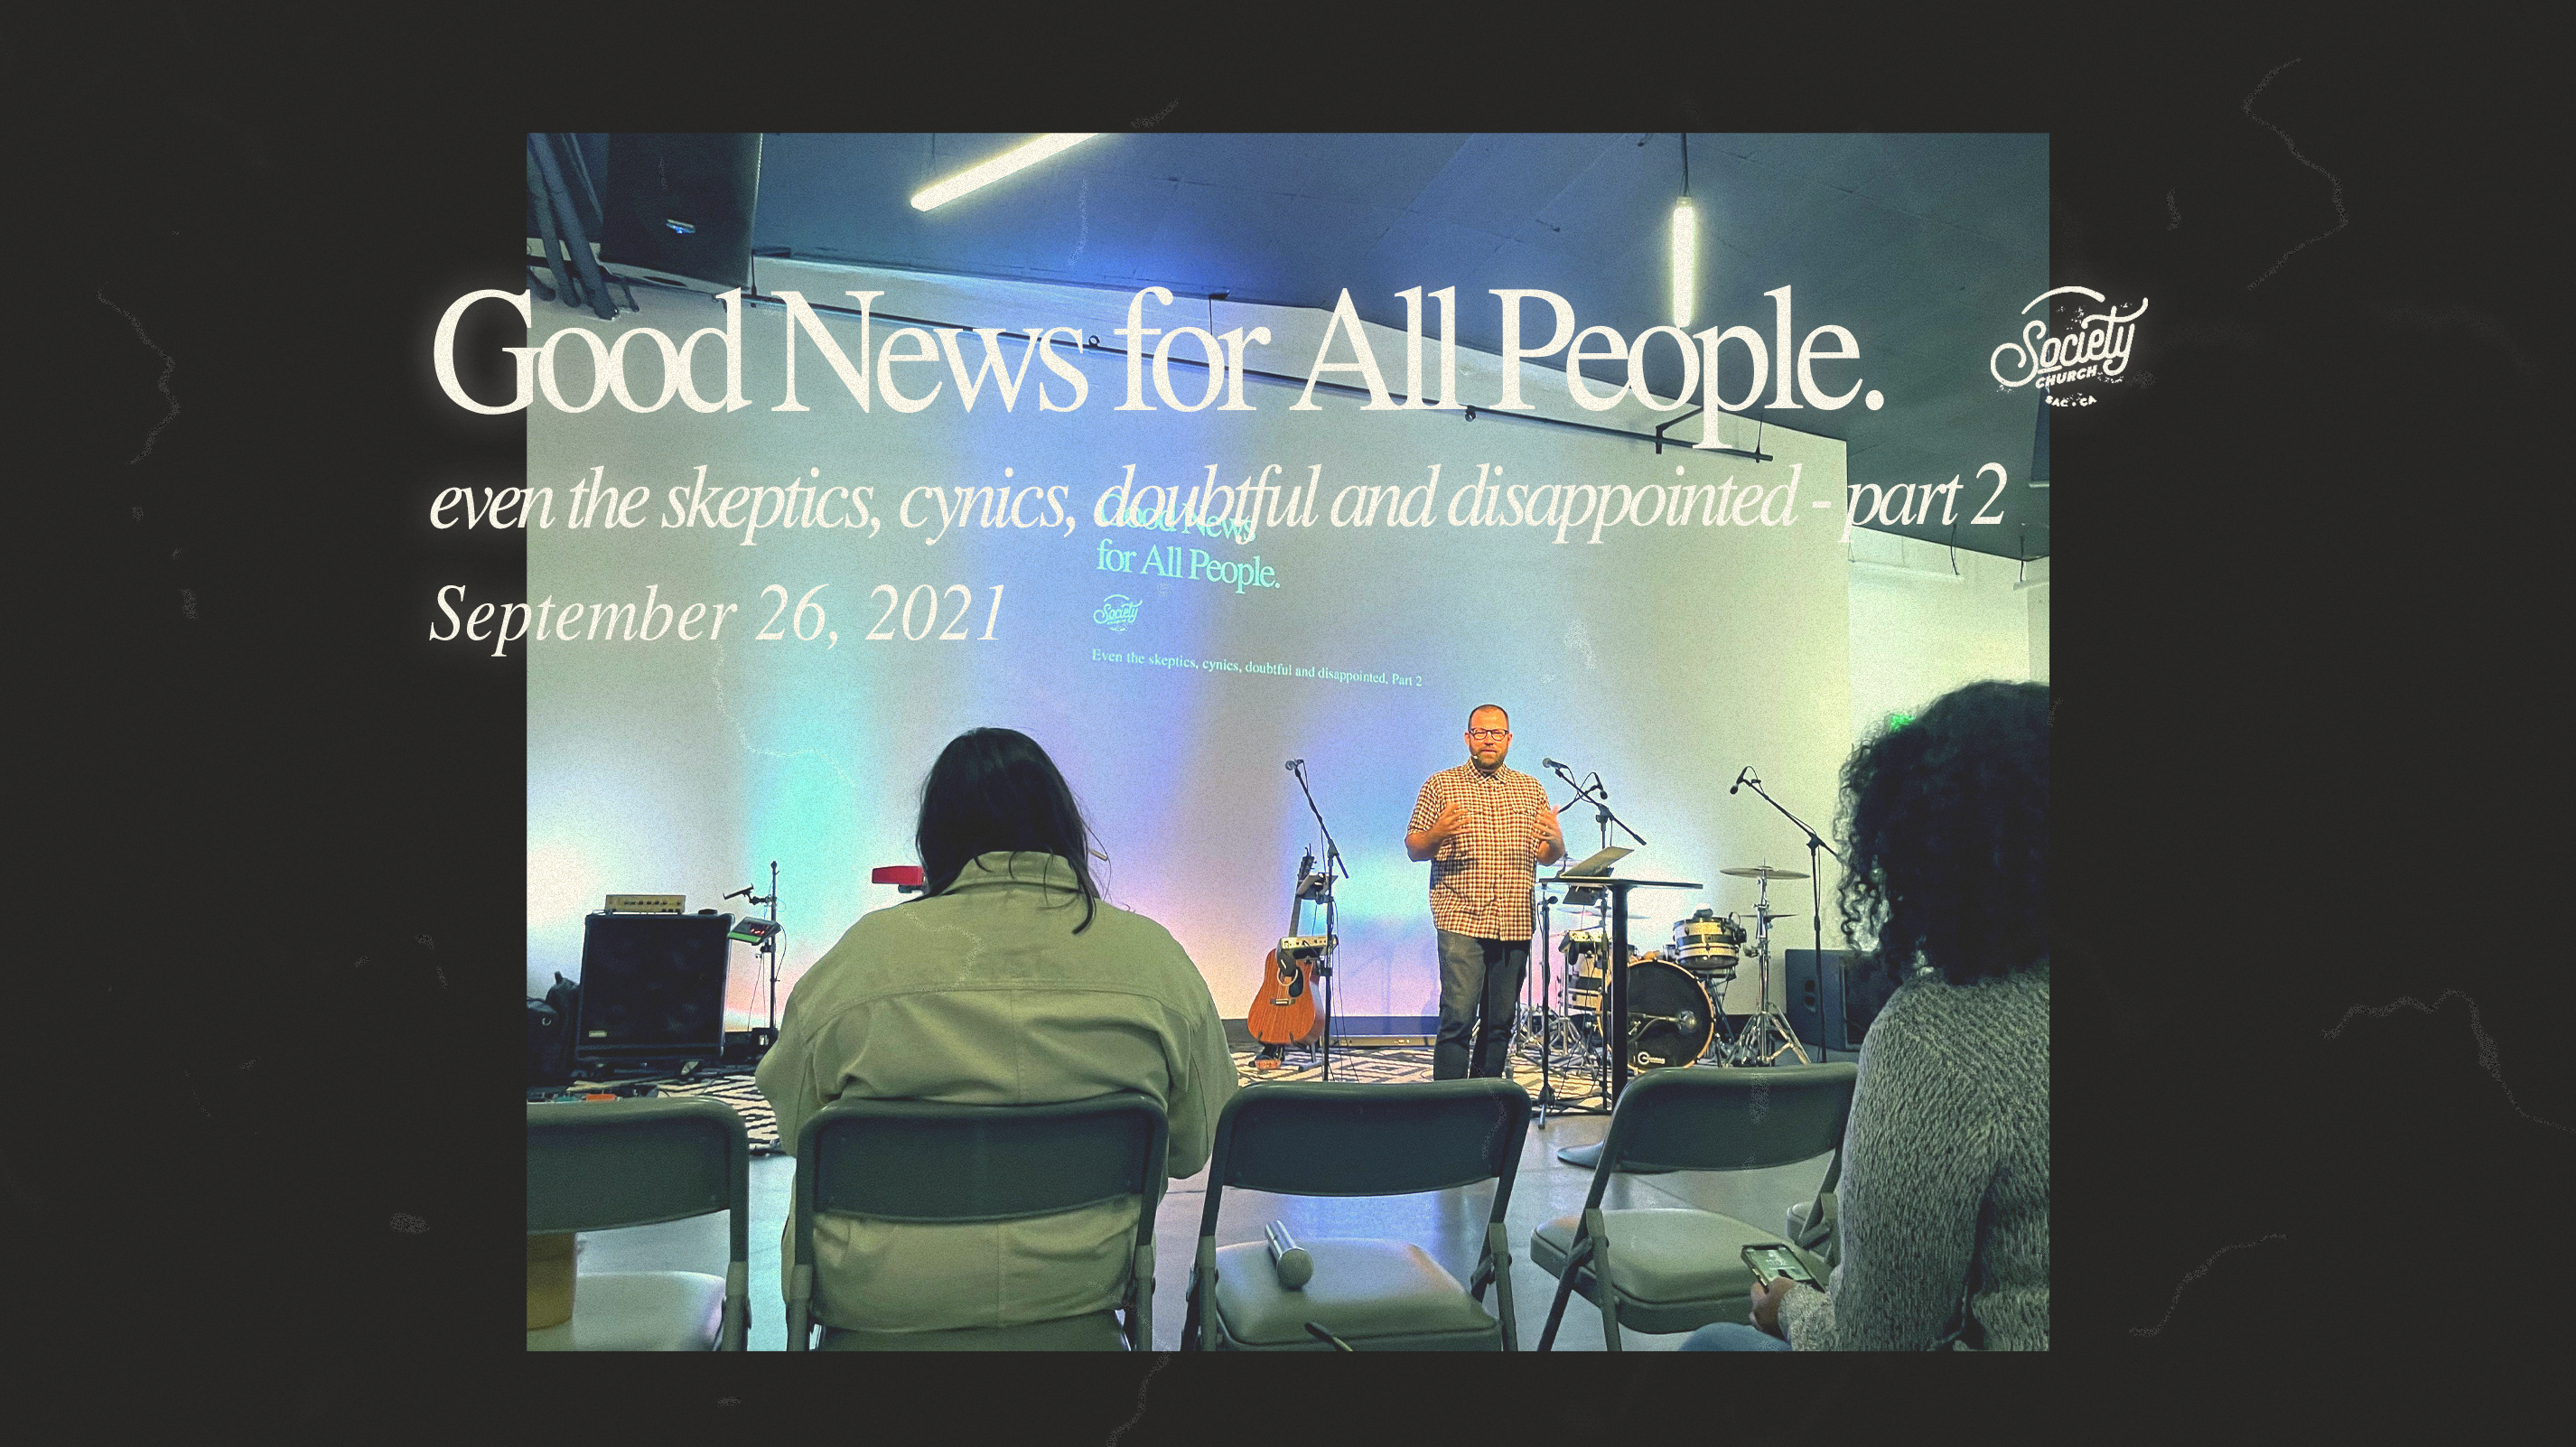 Good News for All People; Even the skeptics, cynics, doubtful and disappointed – Part 2